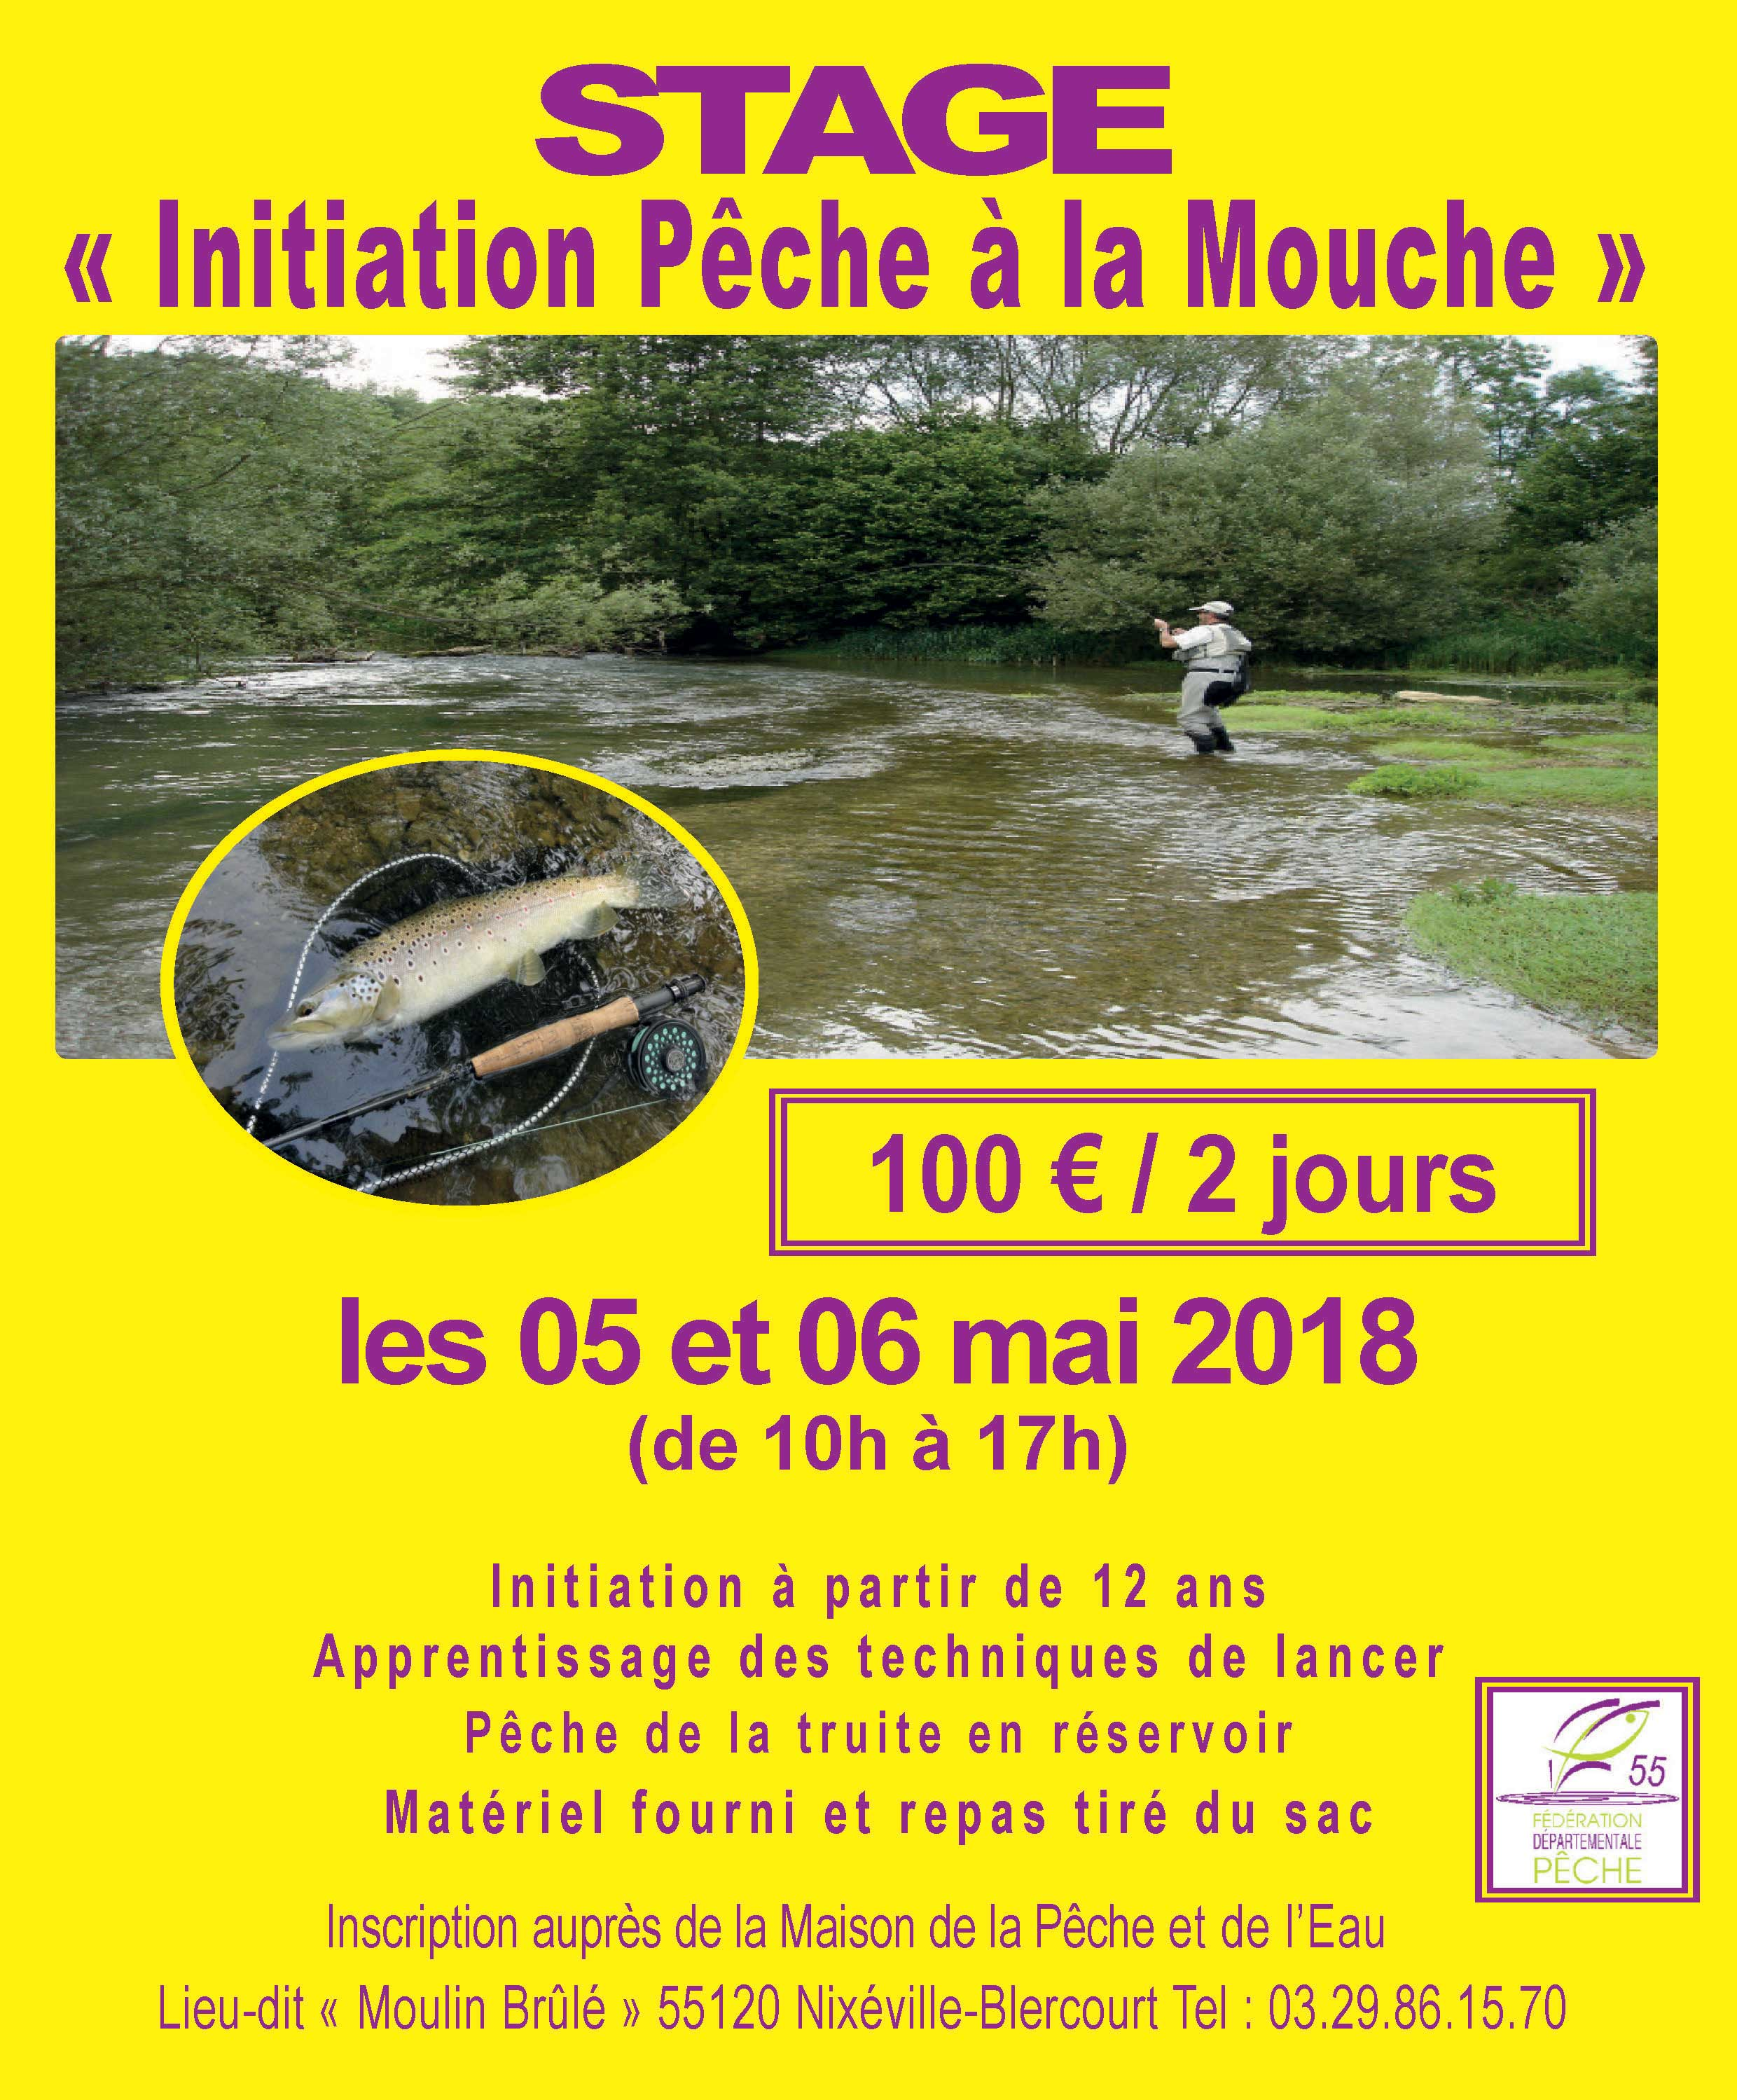 Stage initiation peche a la mouche for Attrape mouche maison